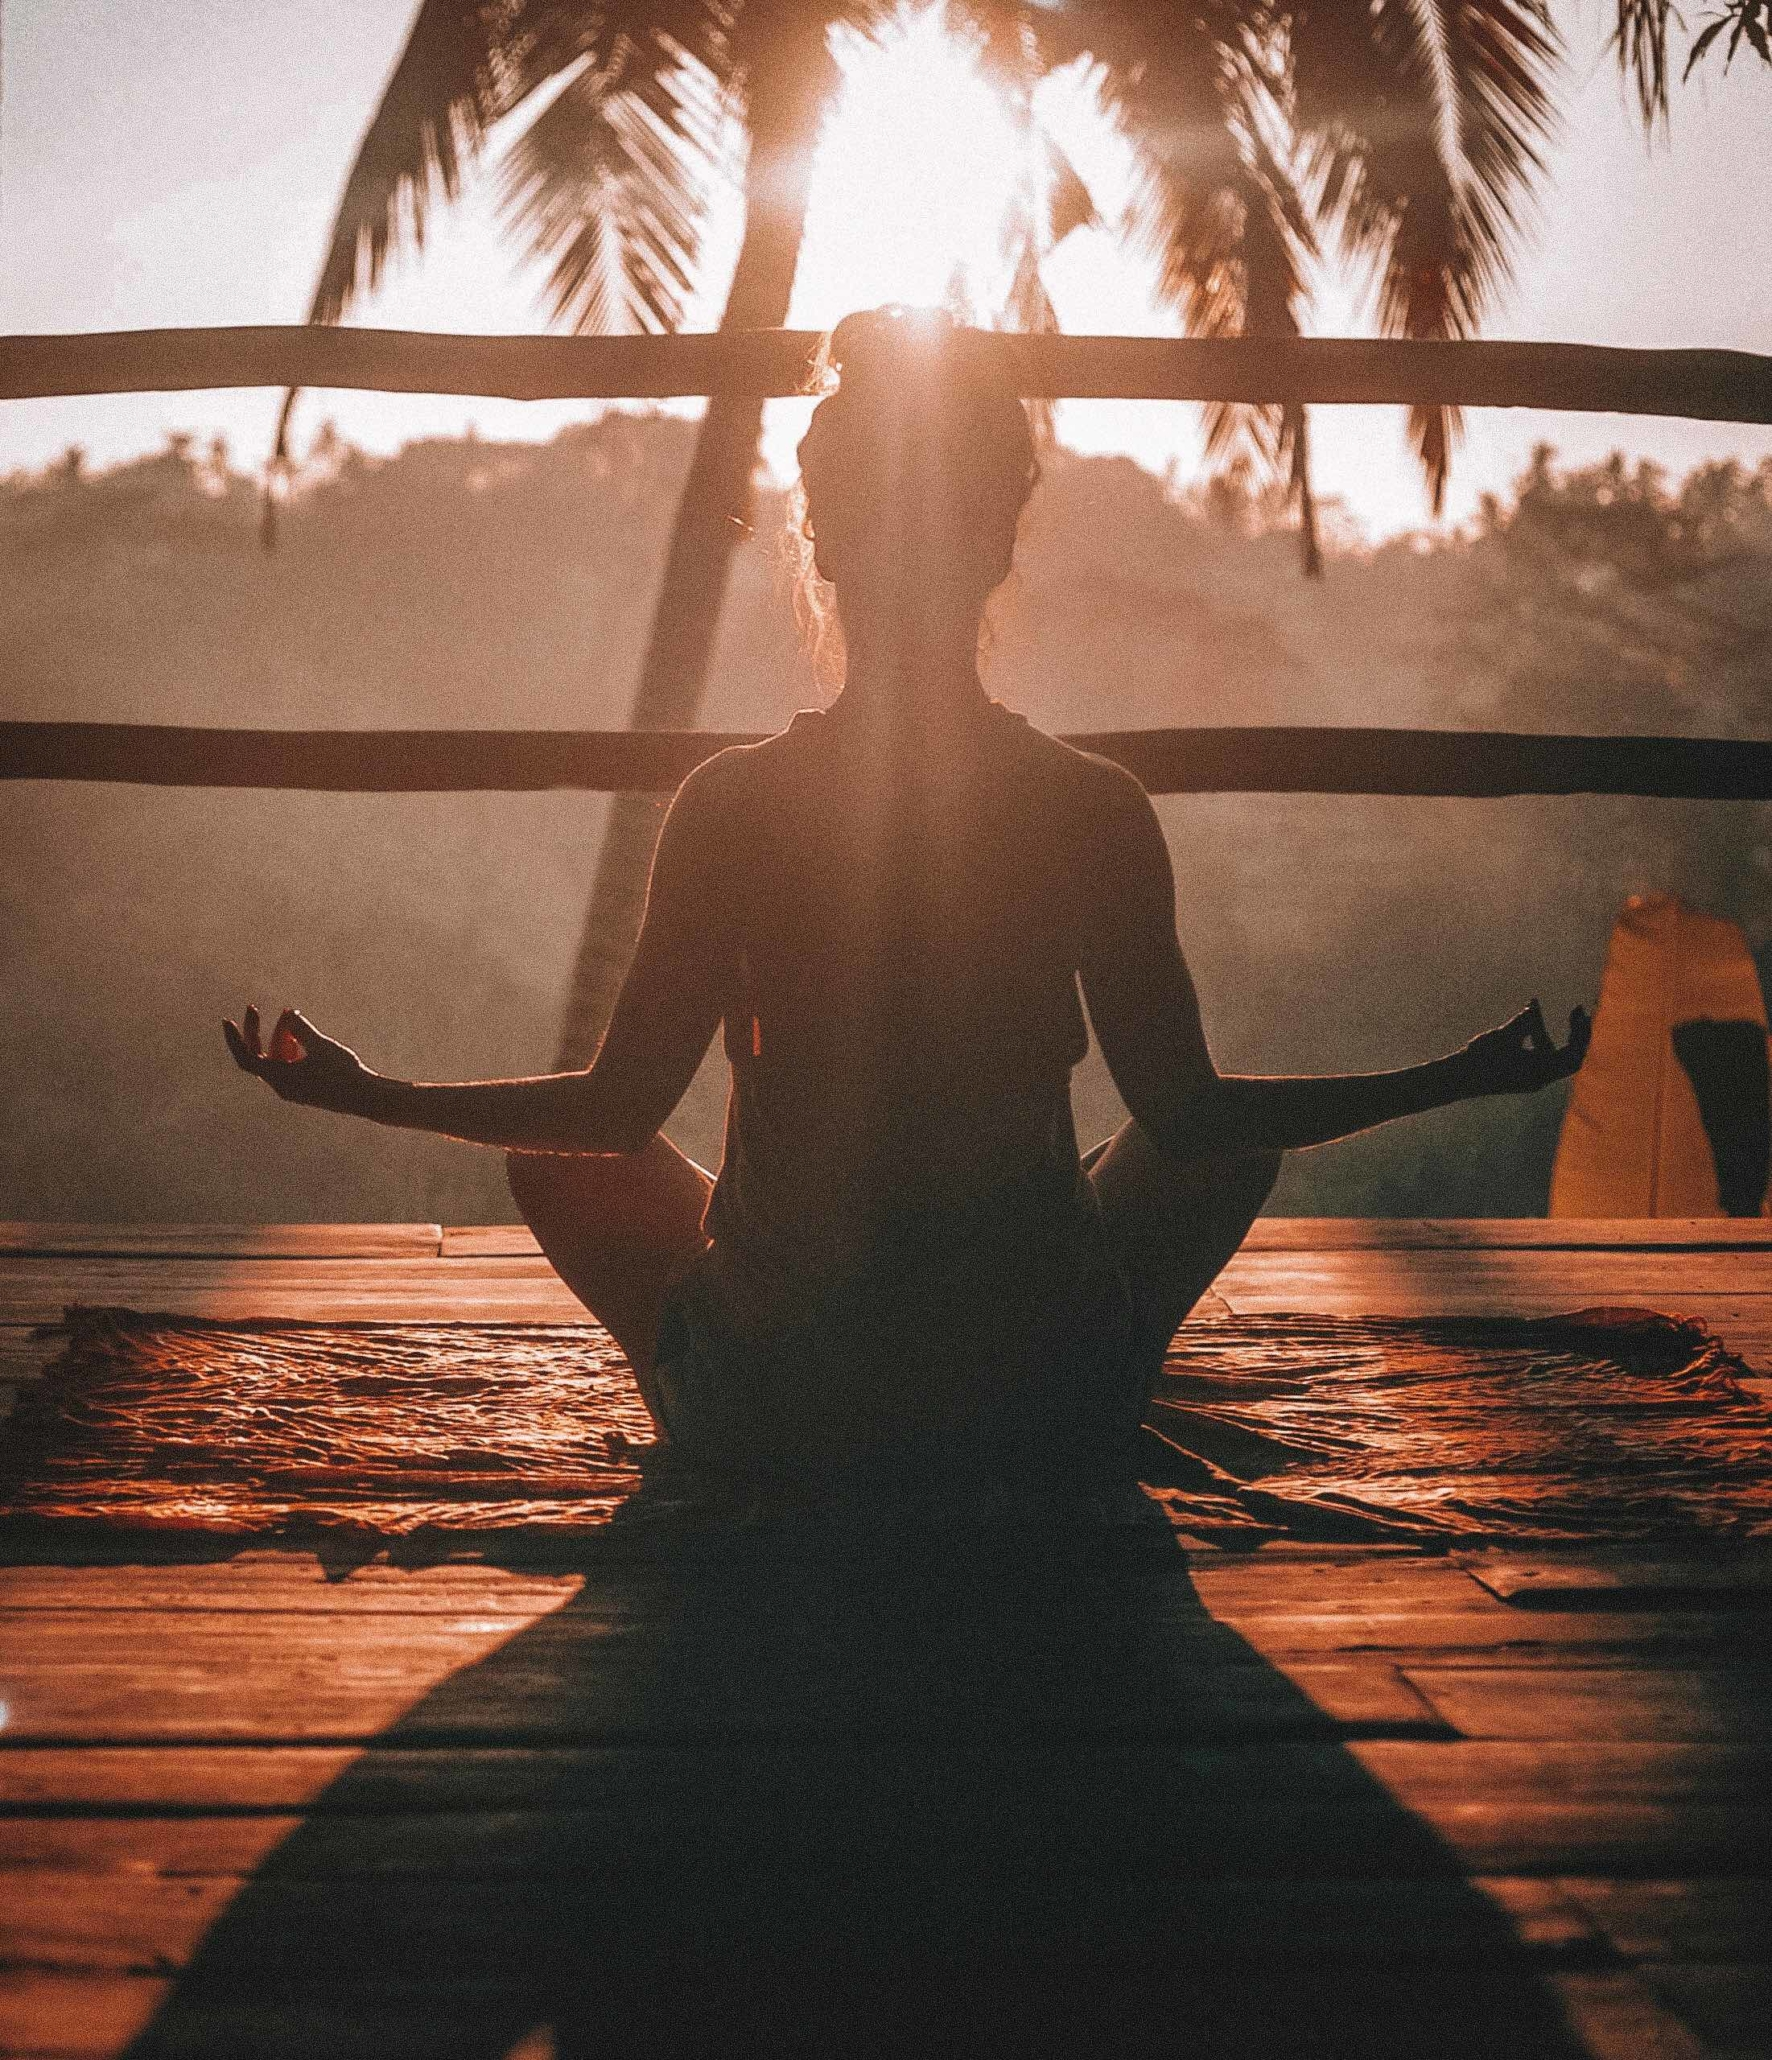 A person meditating during sunrise.